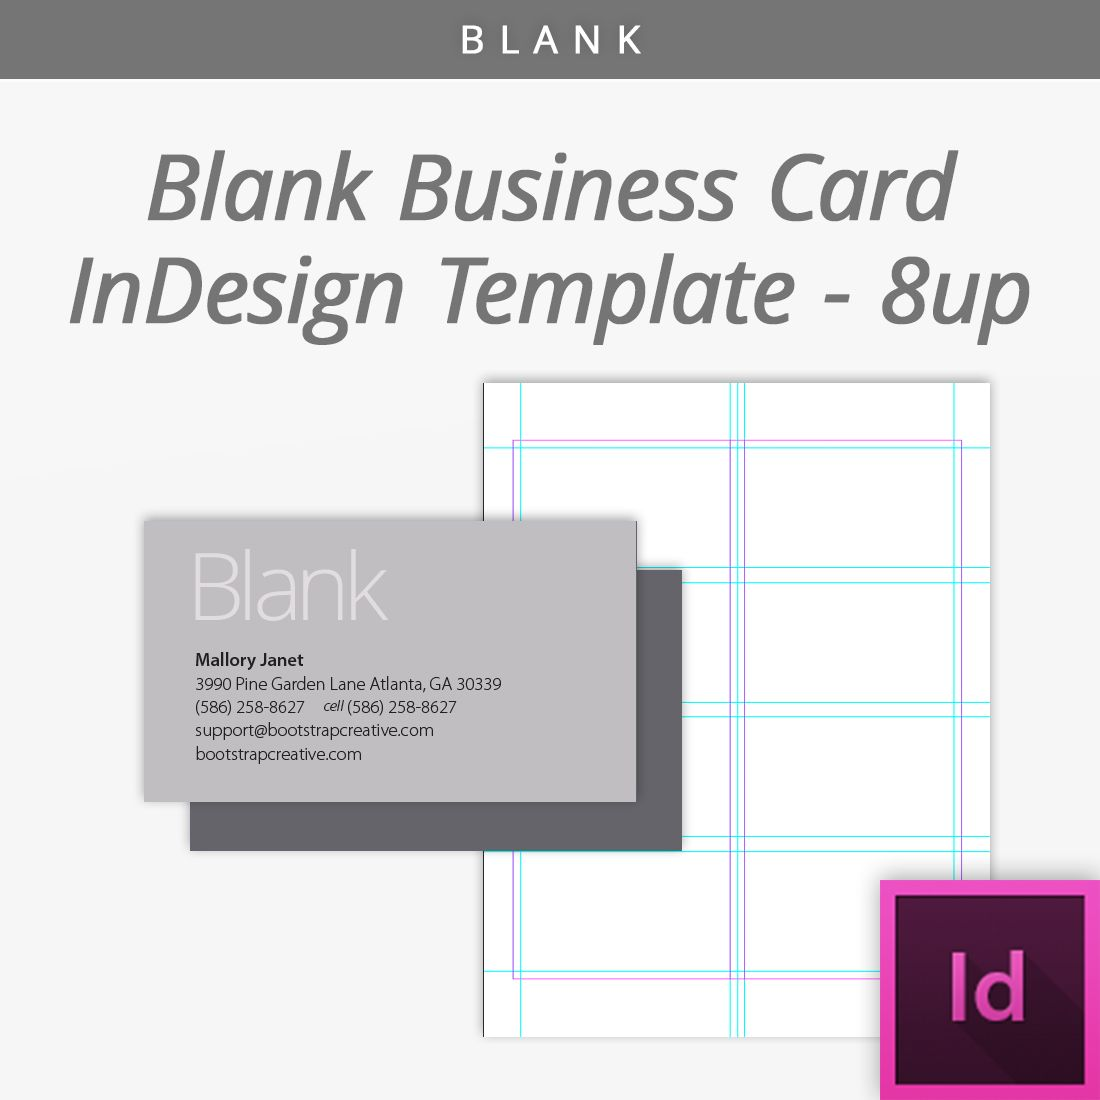 Blank indesign business card template 8 up free download blank indesign business card template 8 up free download designtemplate wajeb Image collections